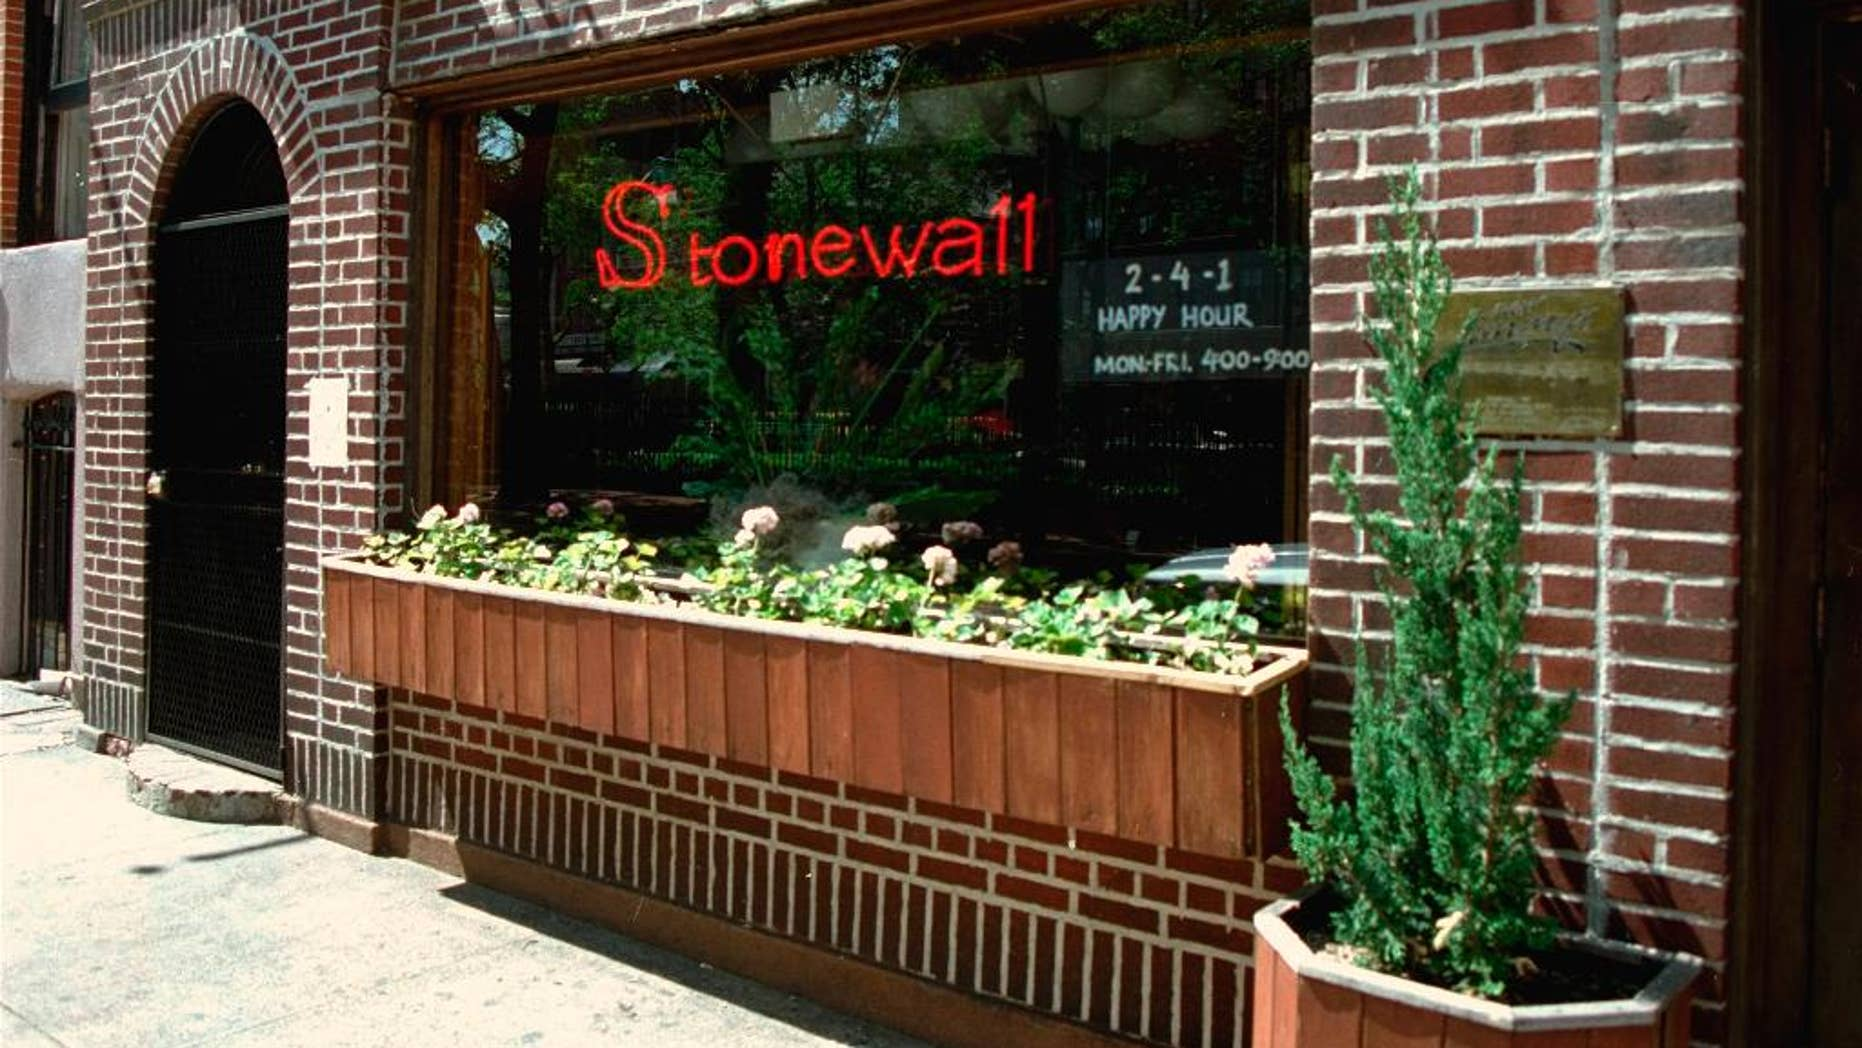 FILE - This May 1994 file photo shows an exterior view of the Stonewall Inn in the Greenwich Village section of New York, site of the 1969 riot that sparked the Gay Rights Movement. New York City police are searching for a man suspected of sexually assaulting a transgender woman in a bathroom at the historic Stonewall Inn bar. Police said Monday, March 28, 2016, the victim was in the unisex bathroom when the unknown man enters and apparently sexually assaults her.  (AP Photo/Kevin Larkin, File)